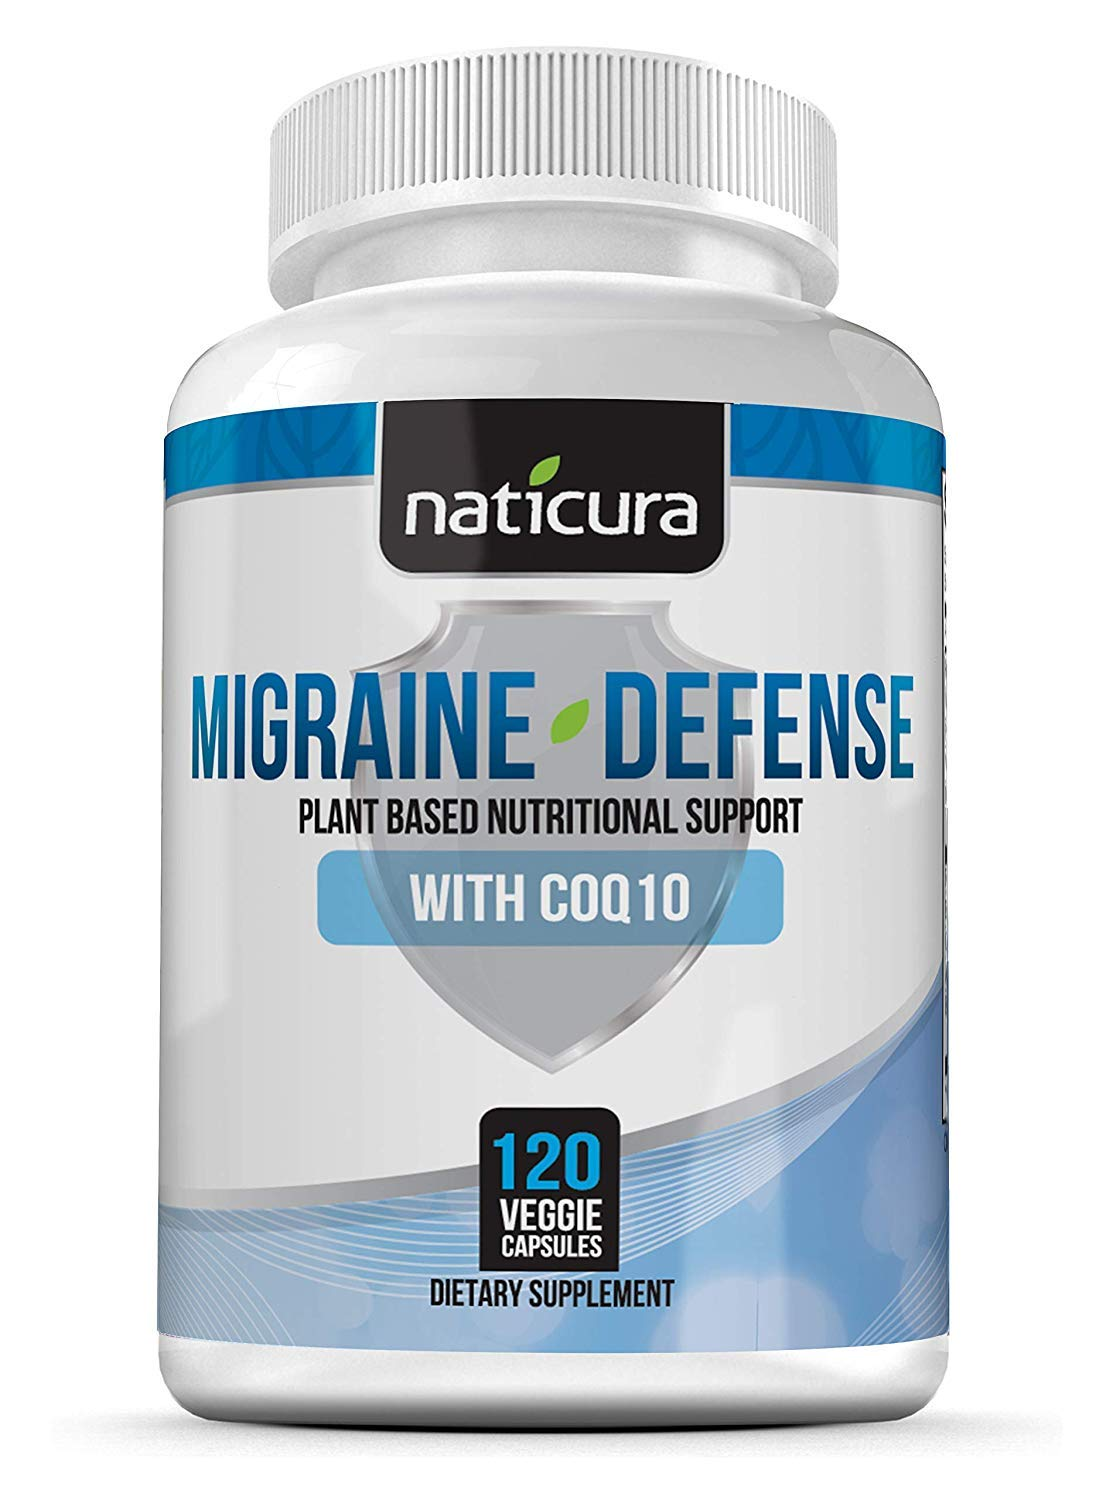 Migraine Relief Headache Vitamin Supplement - Neurologist Recommended to Help Prevent Pain, Nausea, Sensitivity and Auras from Tension and Chronic Strain - 120 Vegan Caps with PA Free Butterbur by Naticura